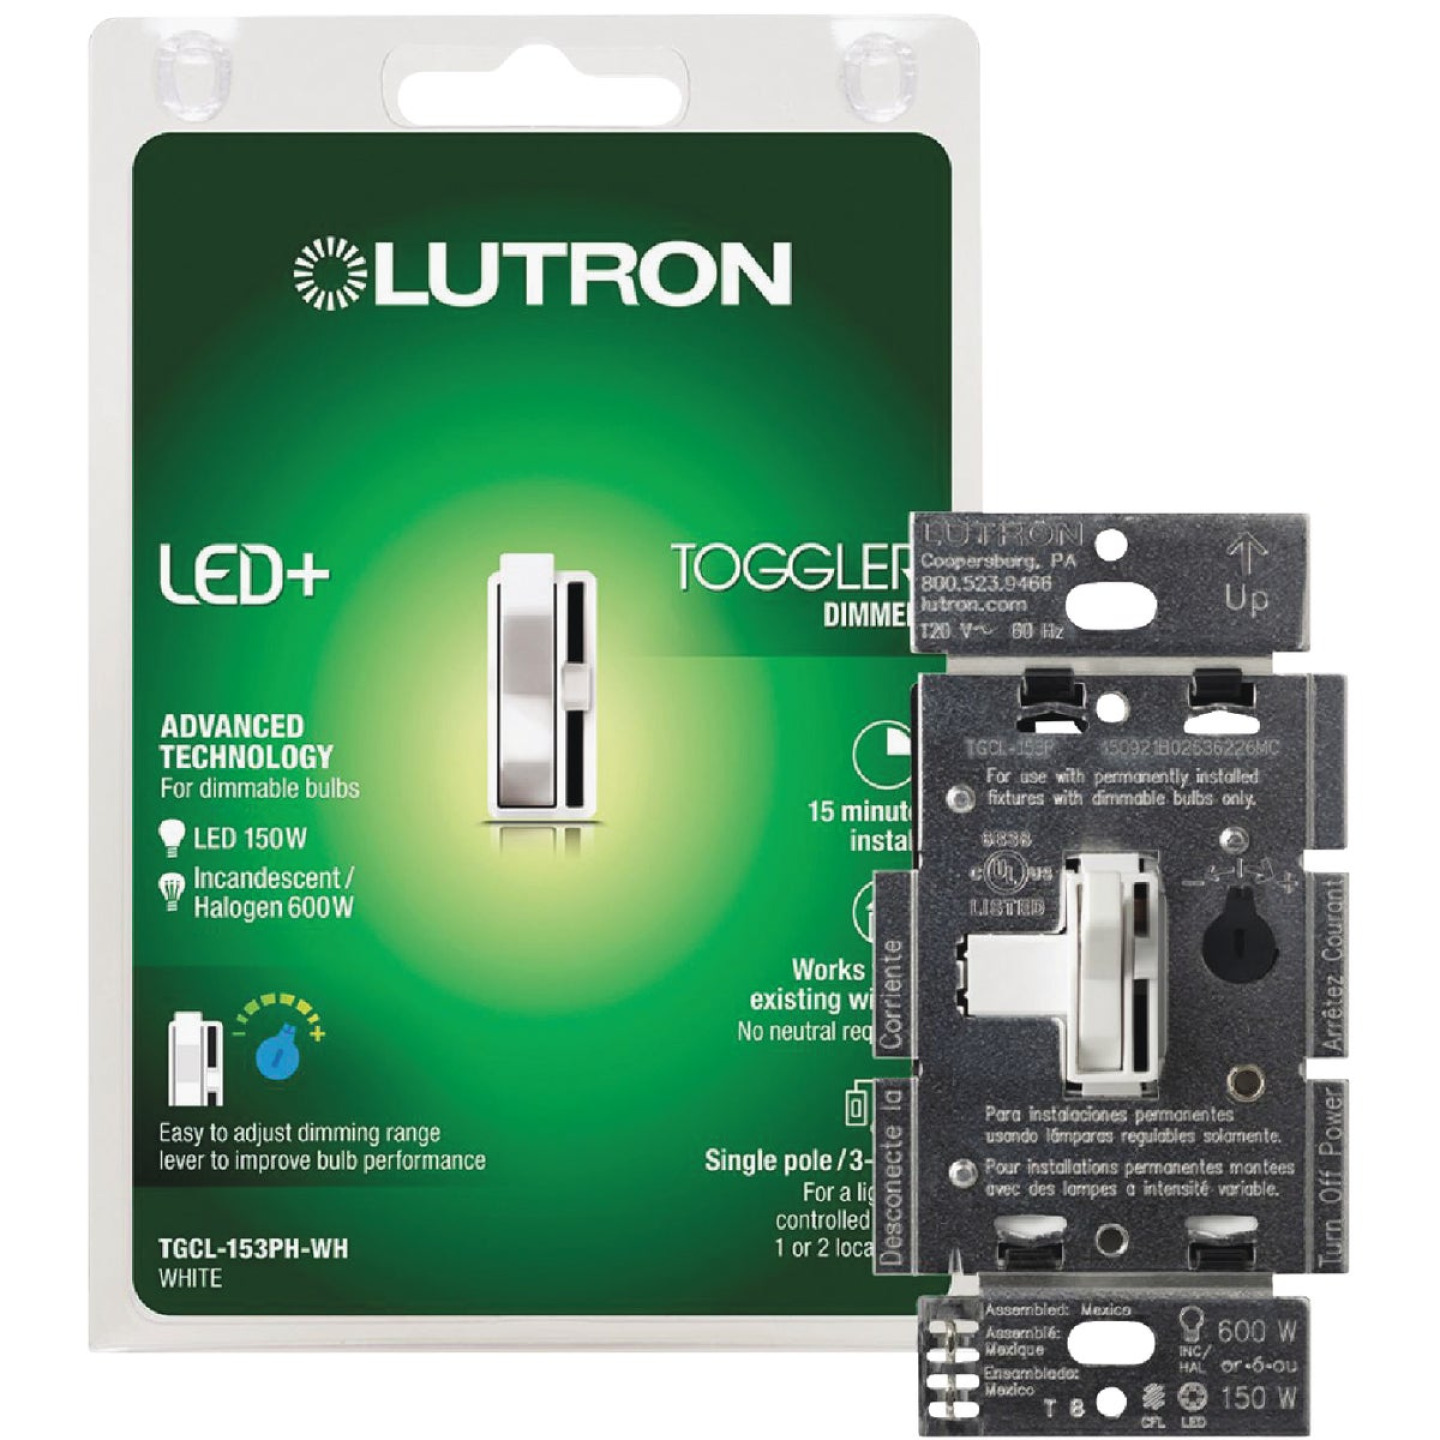 Lutron Toggler Incandescent/Halogen/LED/CFL White Slide Dimmer Switch Image 12